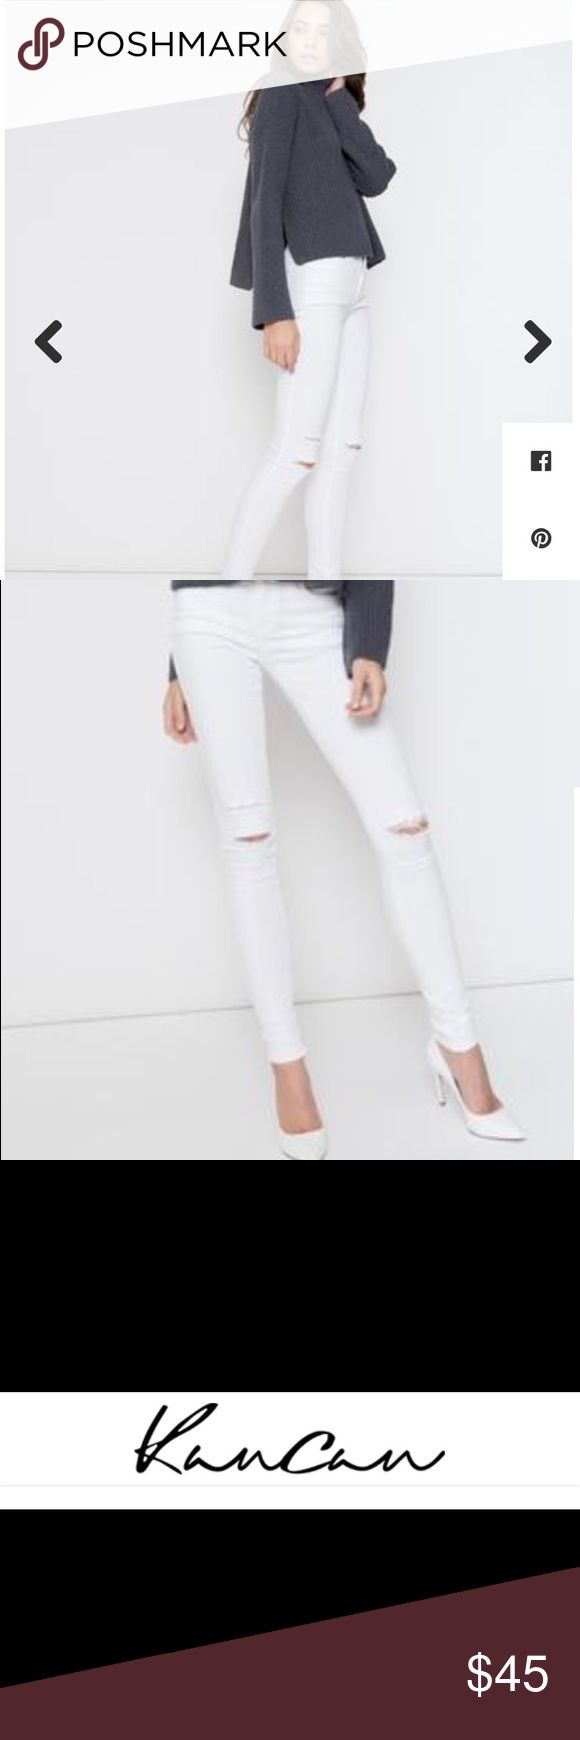 KanCan (NWT) White Denim- Apricot Lane Brand new white denim with knee slits. Size 28 (or 9 for those of you who prefer junior sizing guides). Retails for $59.50. KanCan  is a company out of Las Angeles. White denim definitely hot this season!!! I have an identical pair in black too. Jeans Skinny